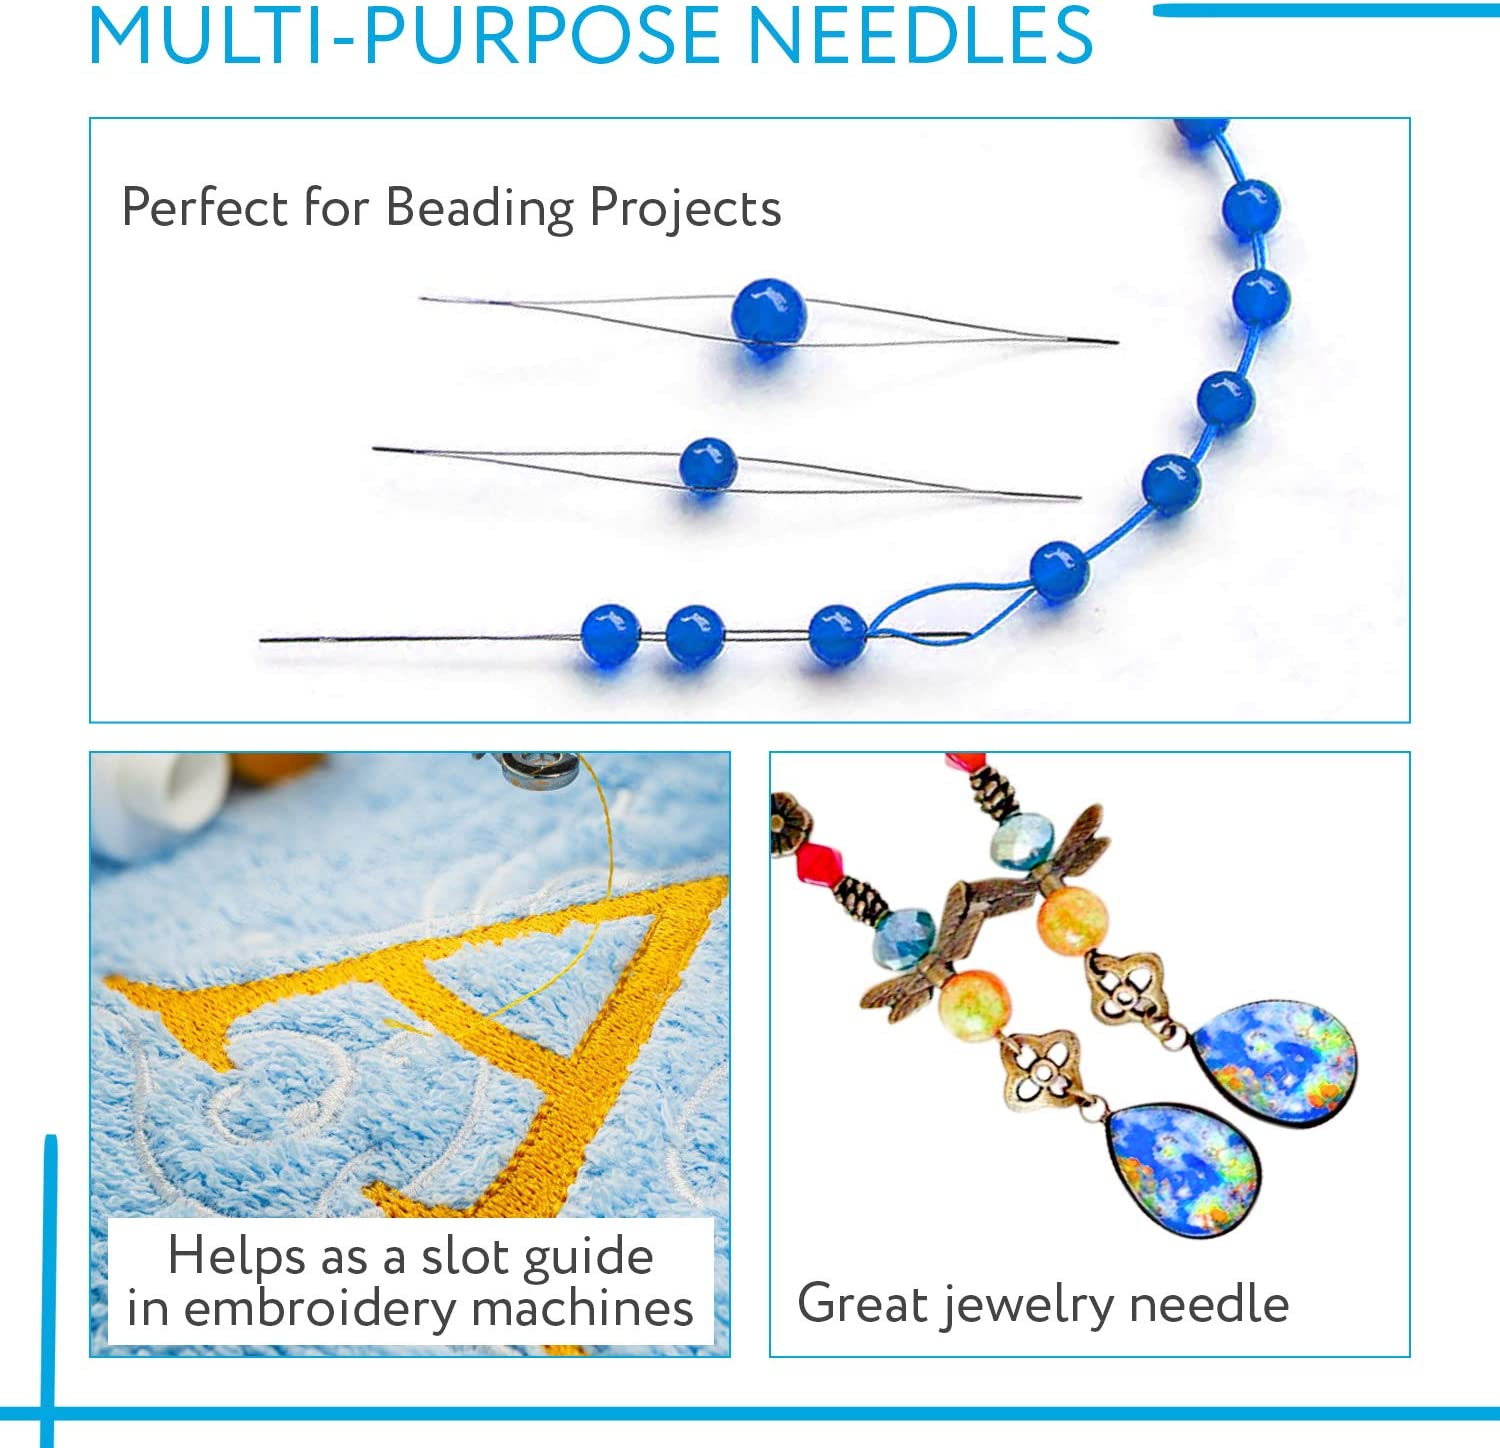 Includes Needle Tube 15 Pack Big Eye Beading Needles 3 Sizes Reduces Fumbling Easy to Thread Great for All Jewelry Making and Beading Projects